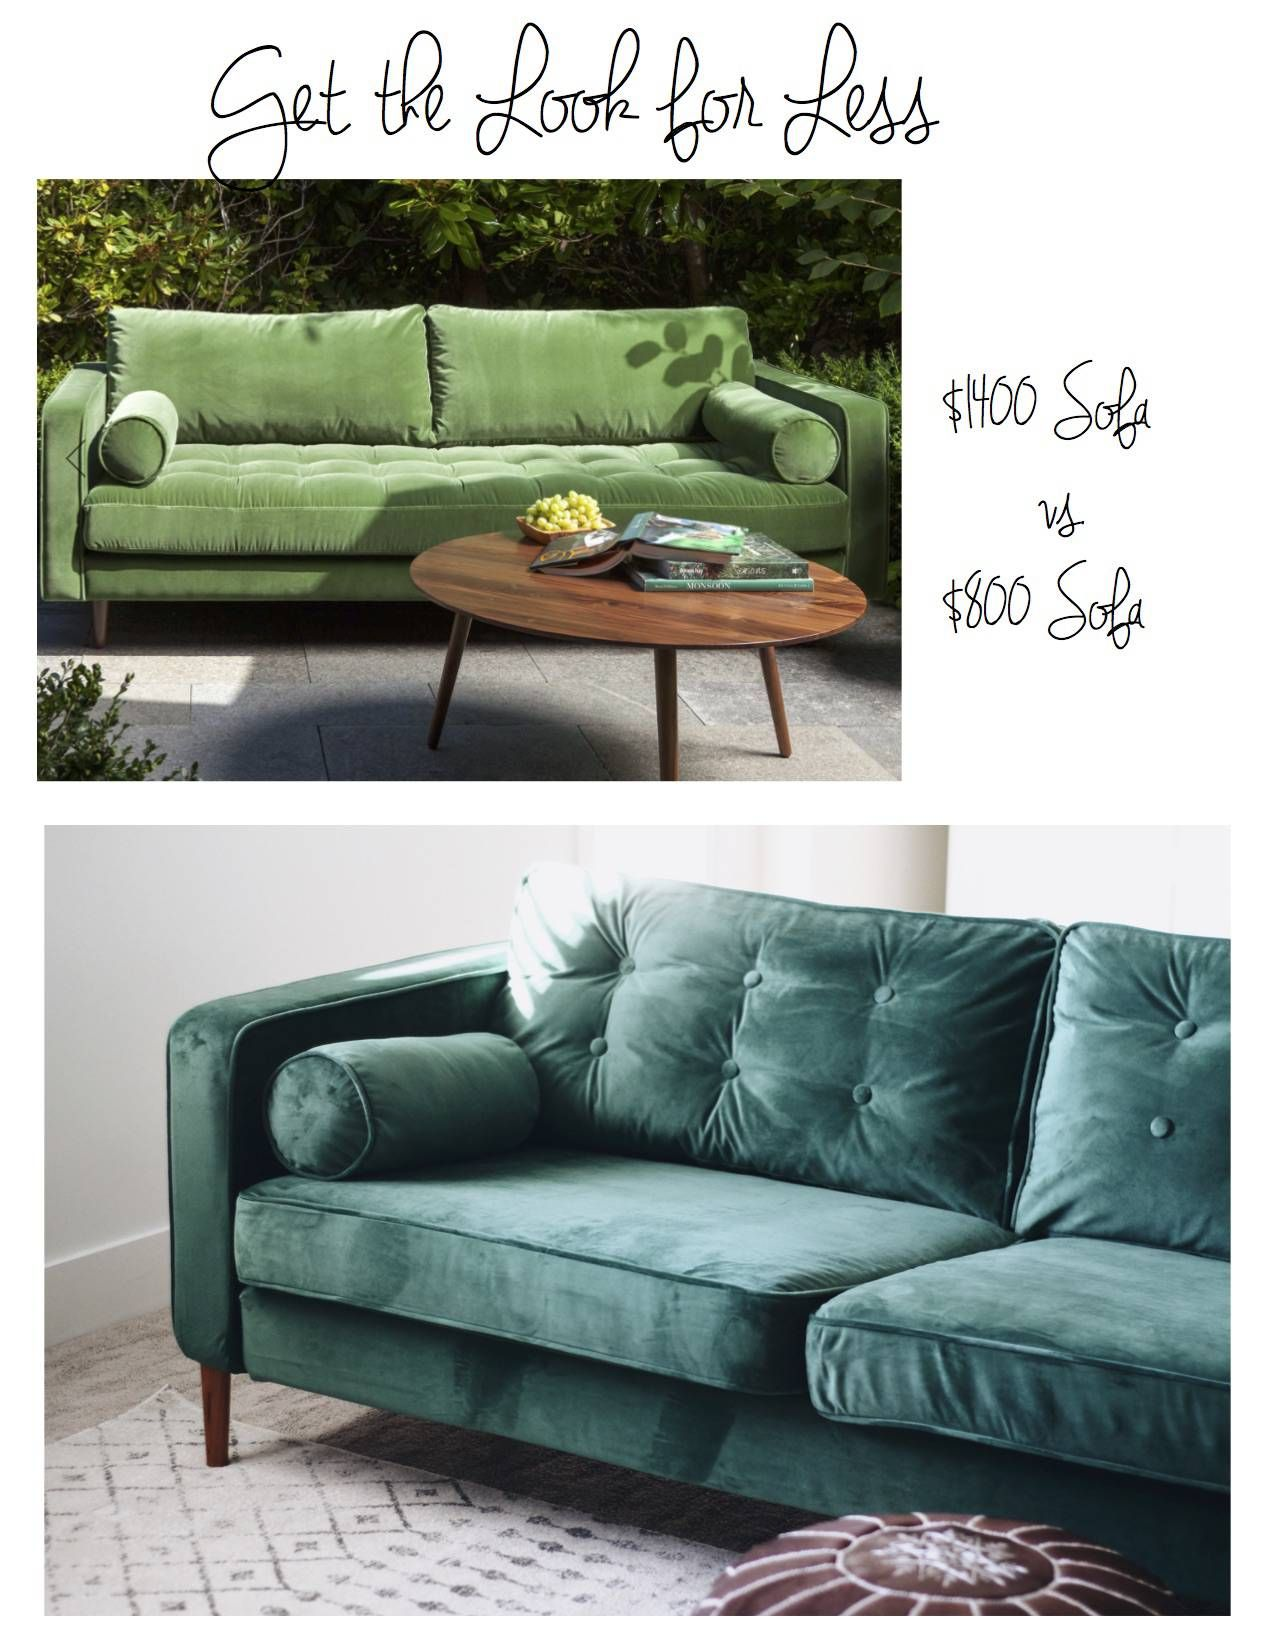 pin by rory pate on diy in 2018 pinterest slipcovers comforters rh pinterest com ikea sofa covers karlstad uk ikea karlstad sectional sofa covers